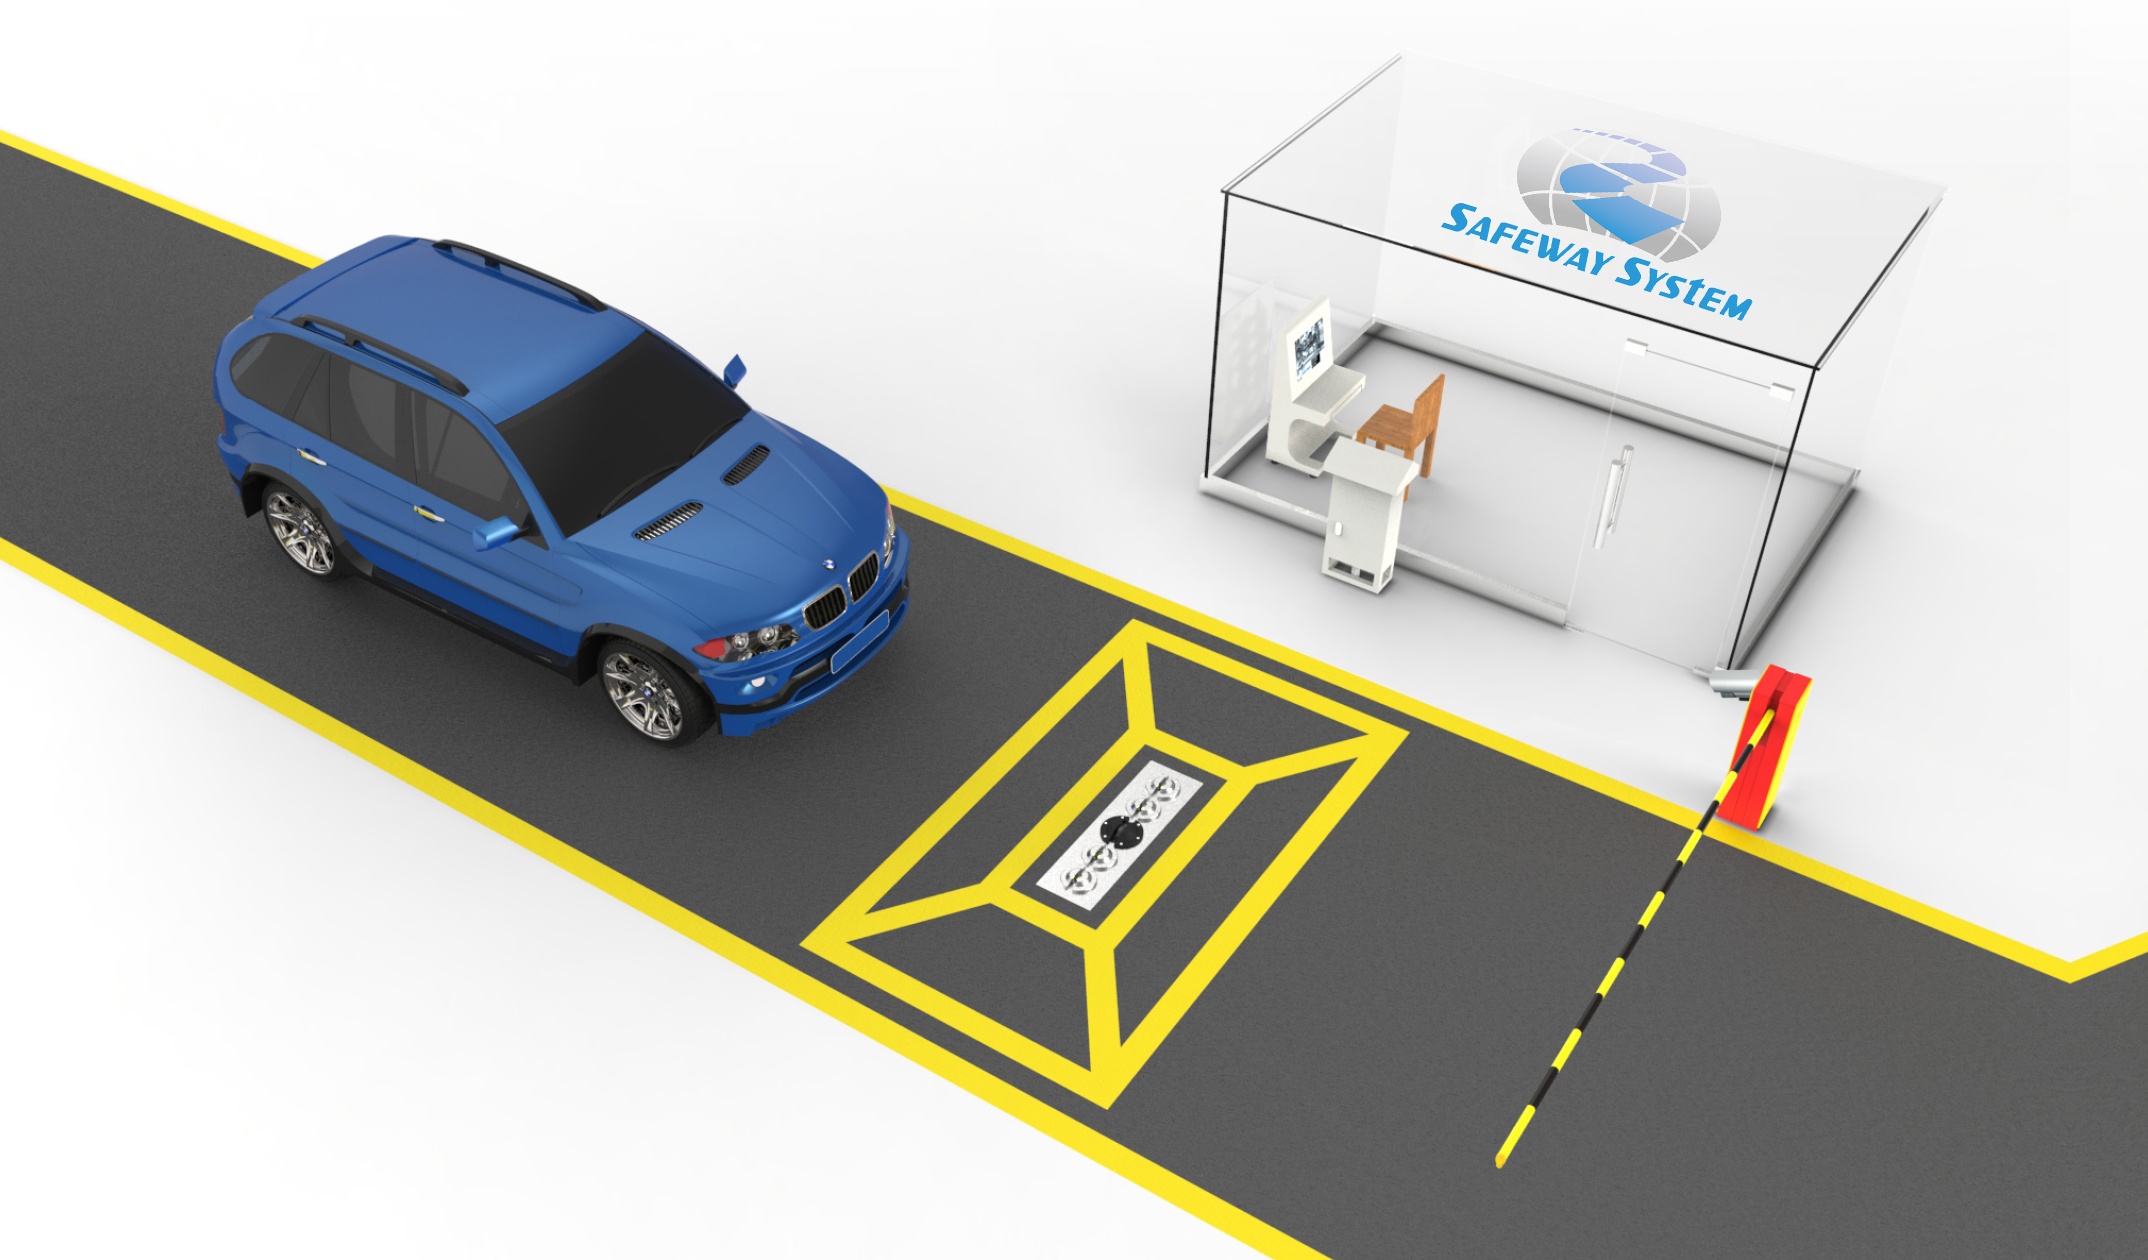 Under Vehicle Surveillance System for Airport, Customs, Vehicle Security